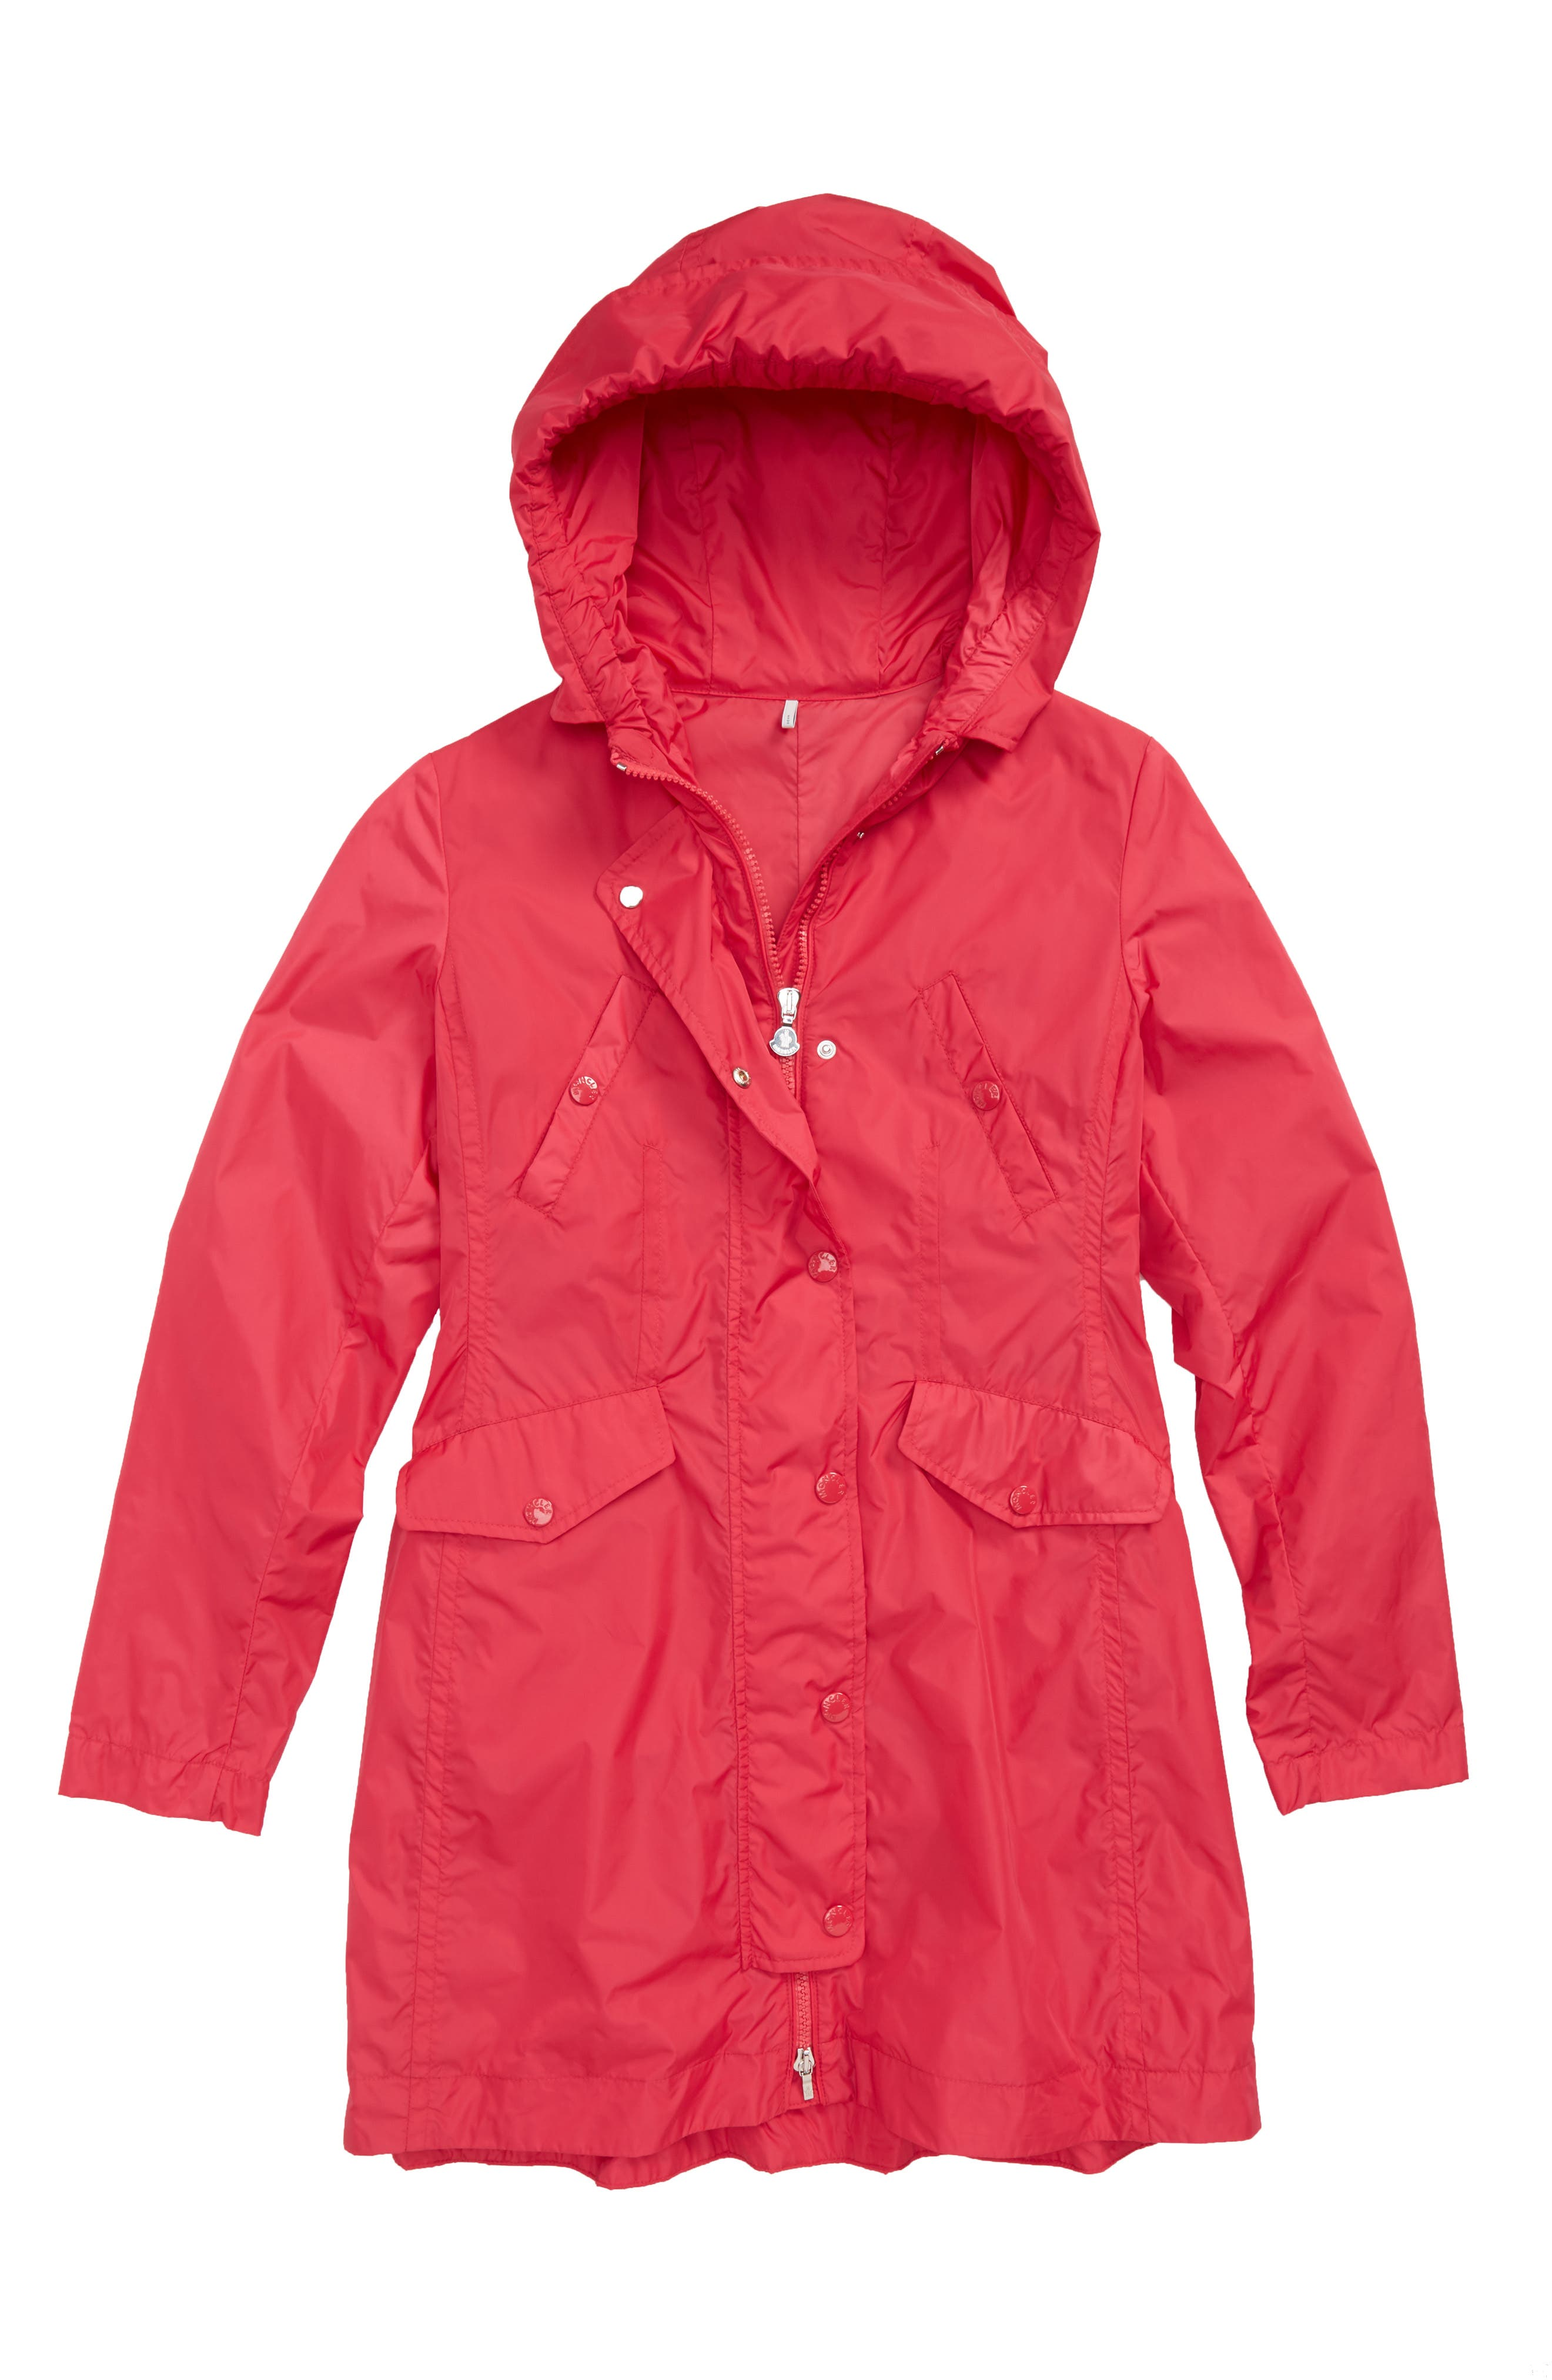 Main Image - Moncler Audrey Longline Raincoat (Little Girls & Big Girls)